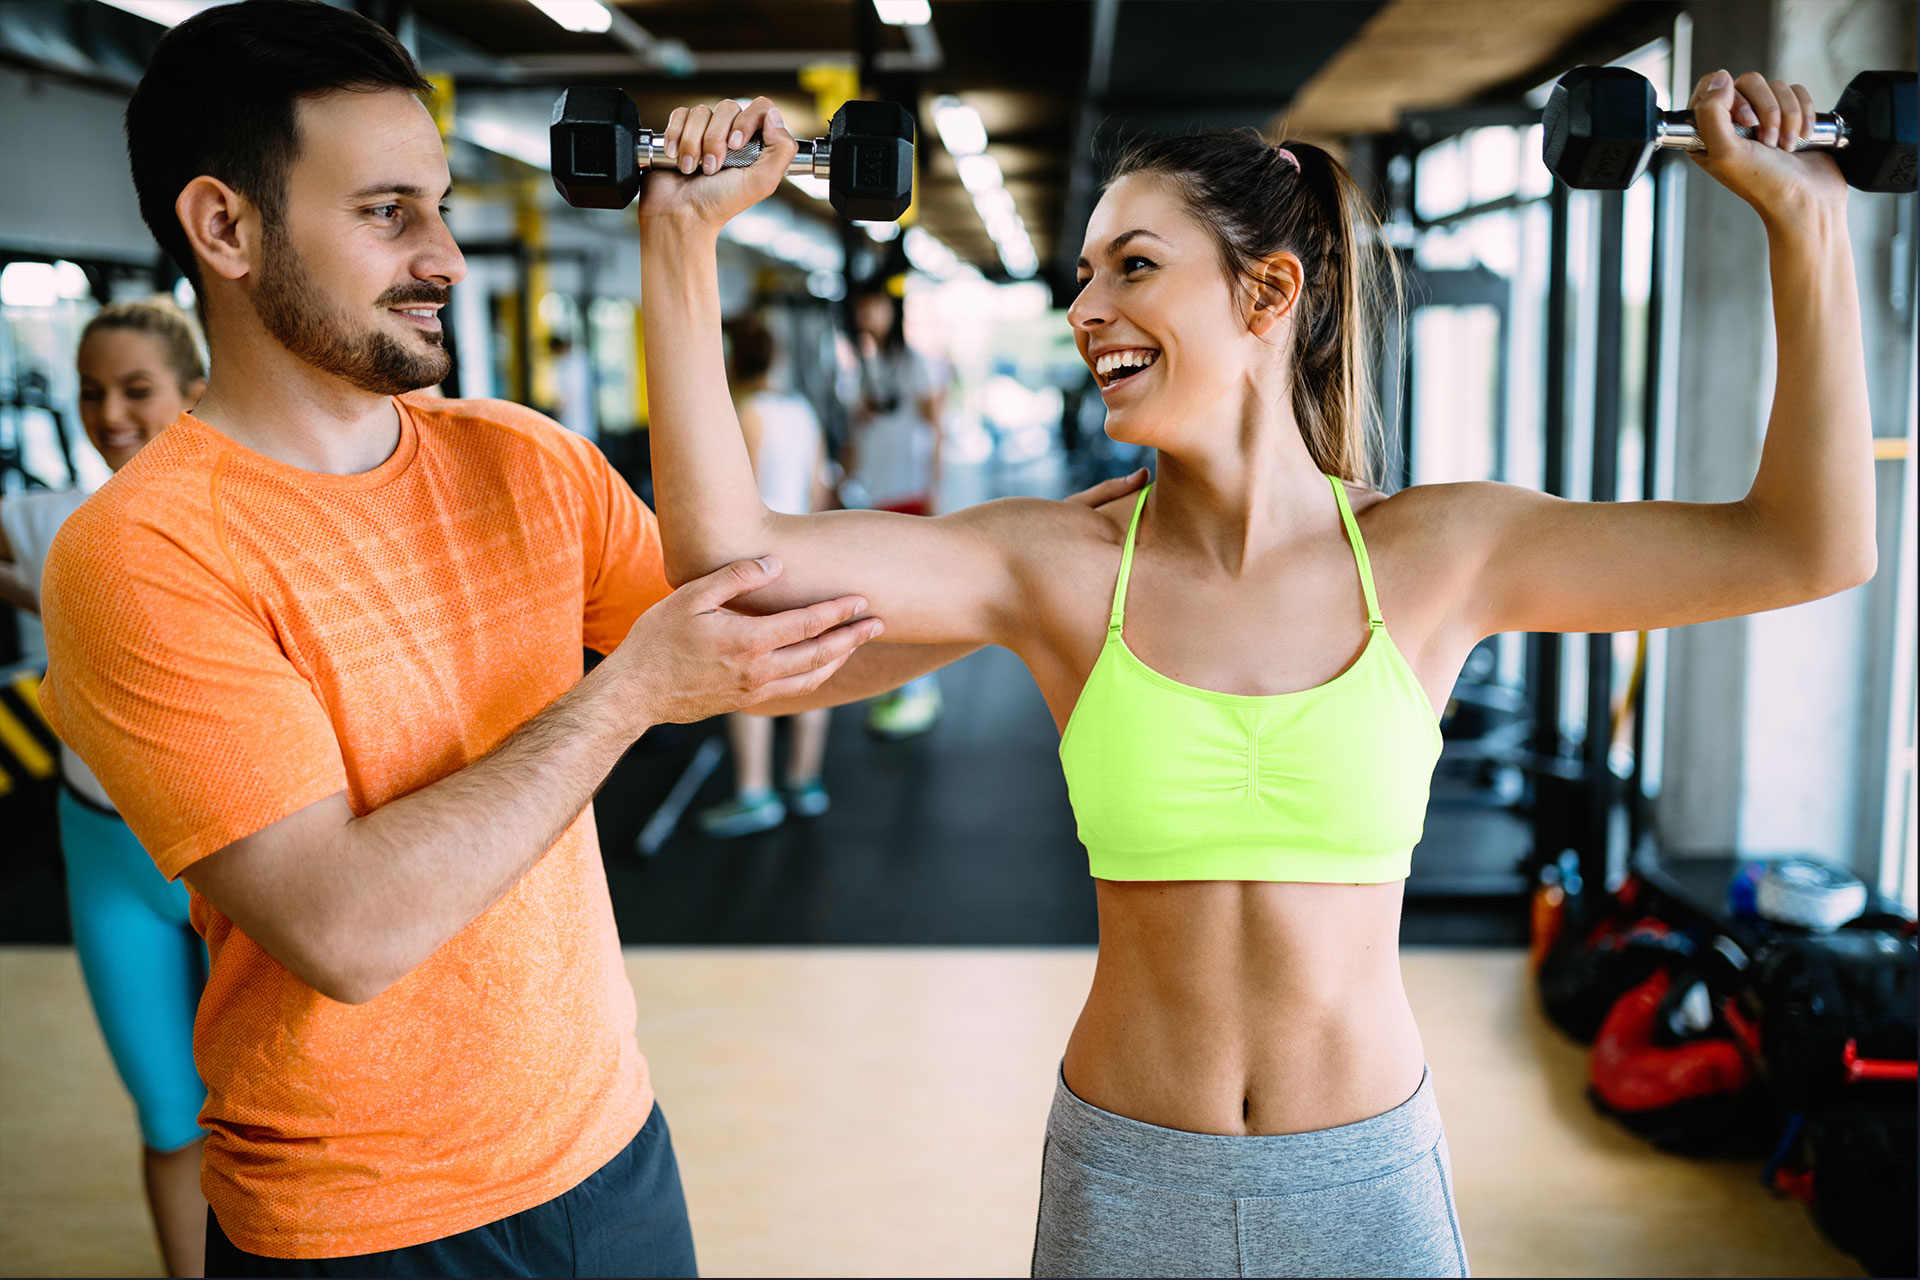 For the month of May, new members can enroll including 5 Personal Fitness Training sessions in our Denver, Colorado gym and fitness center.